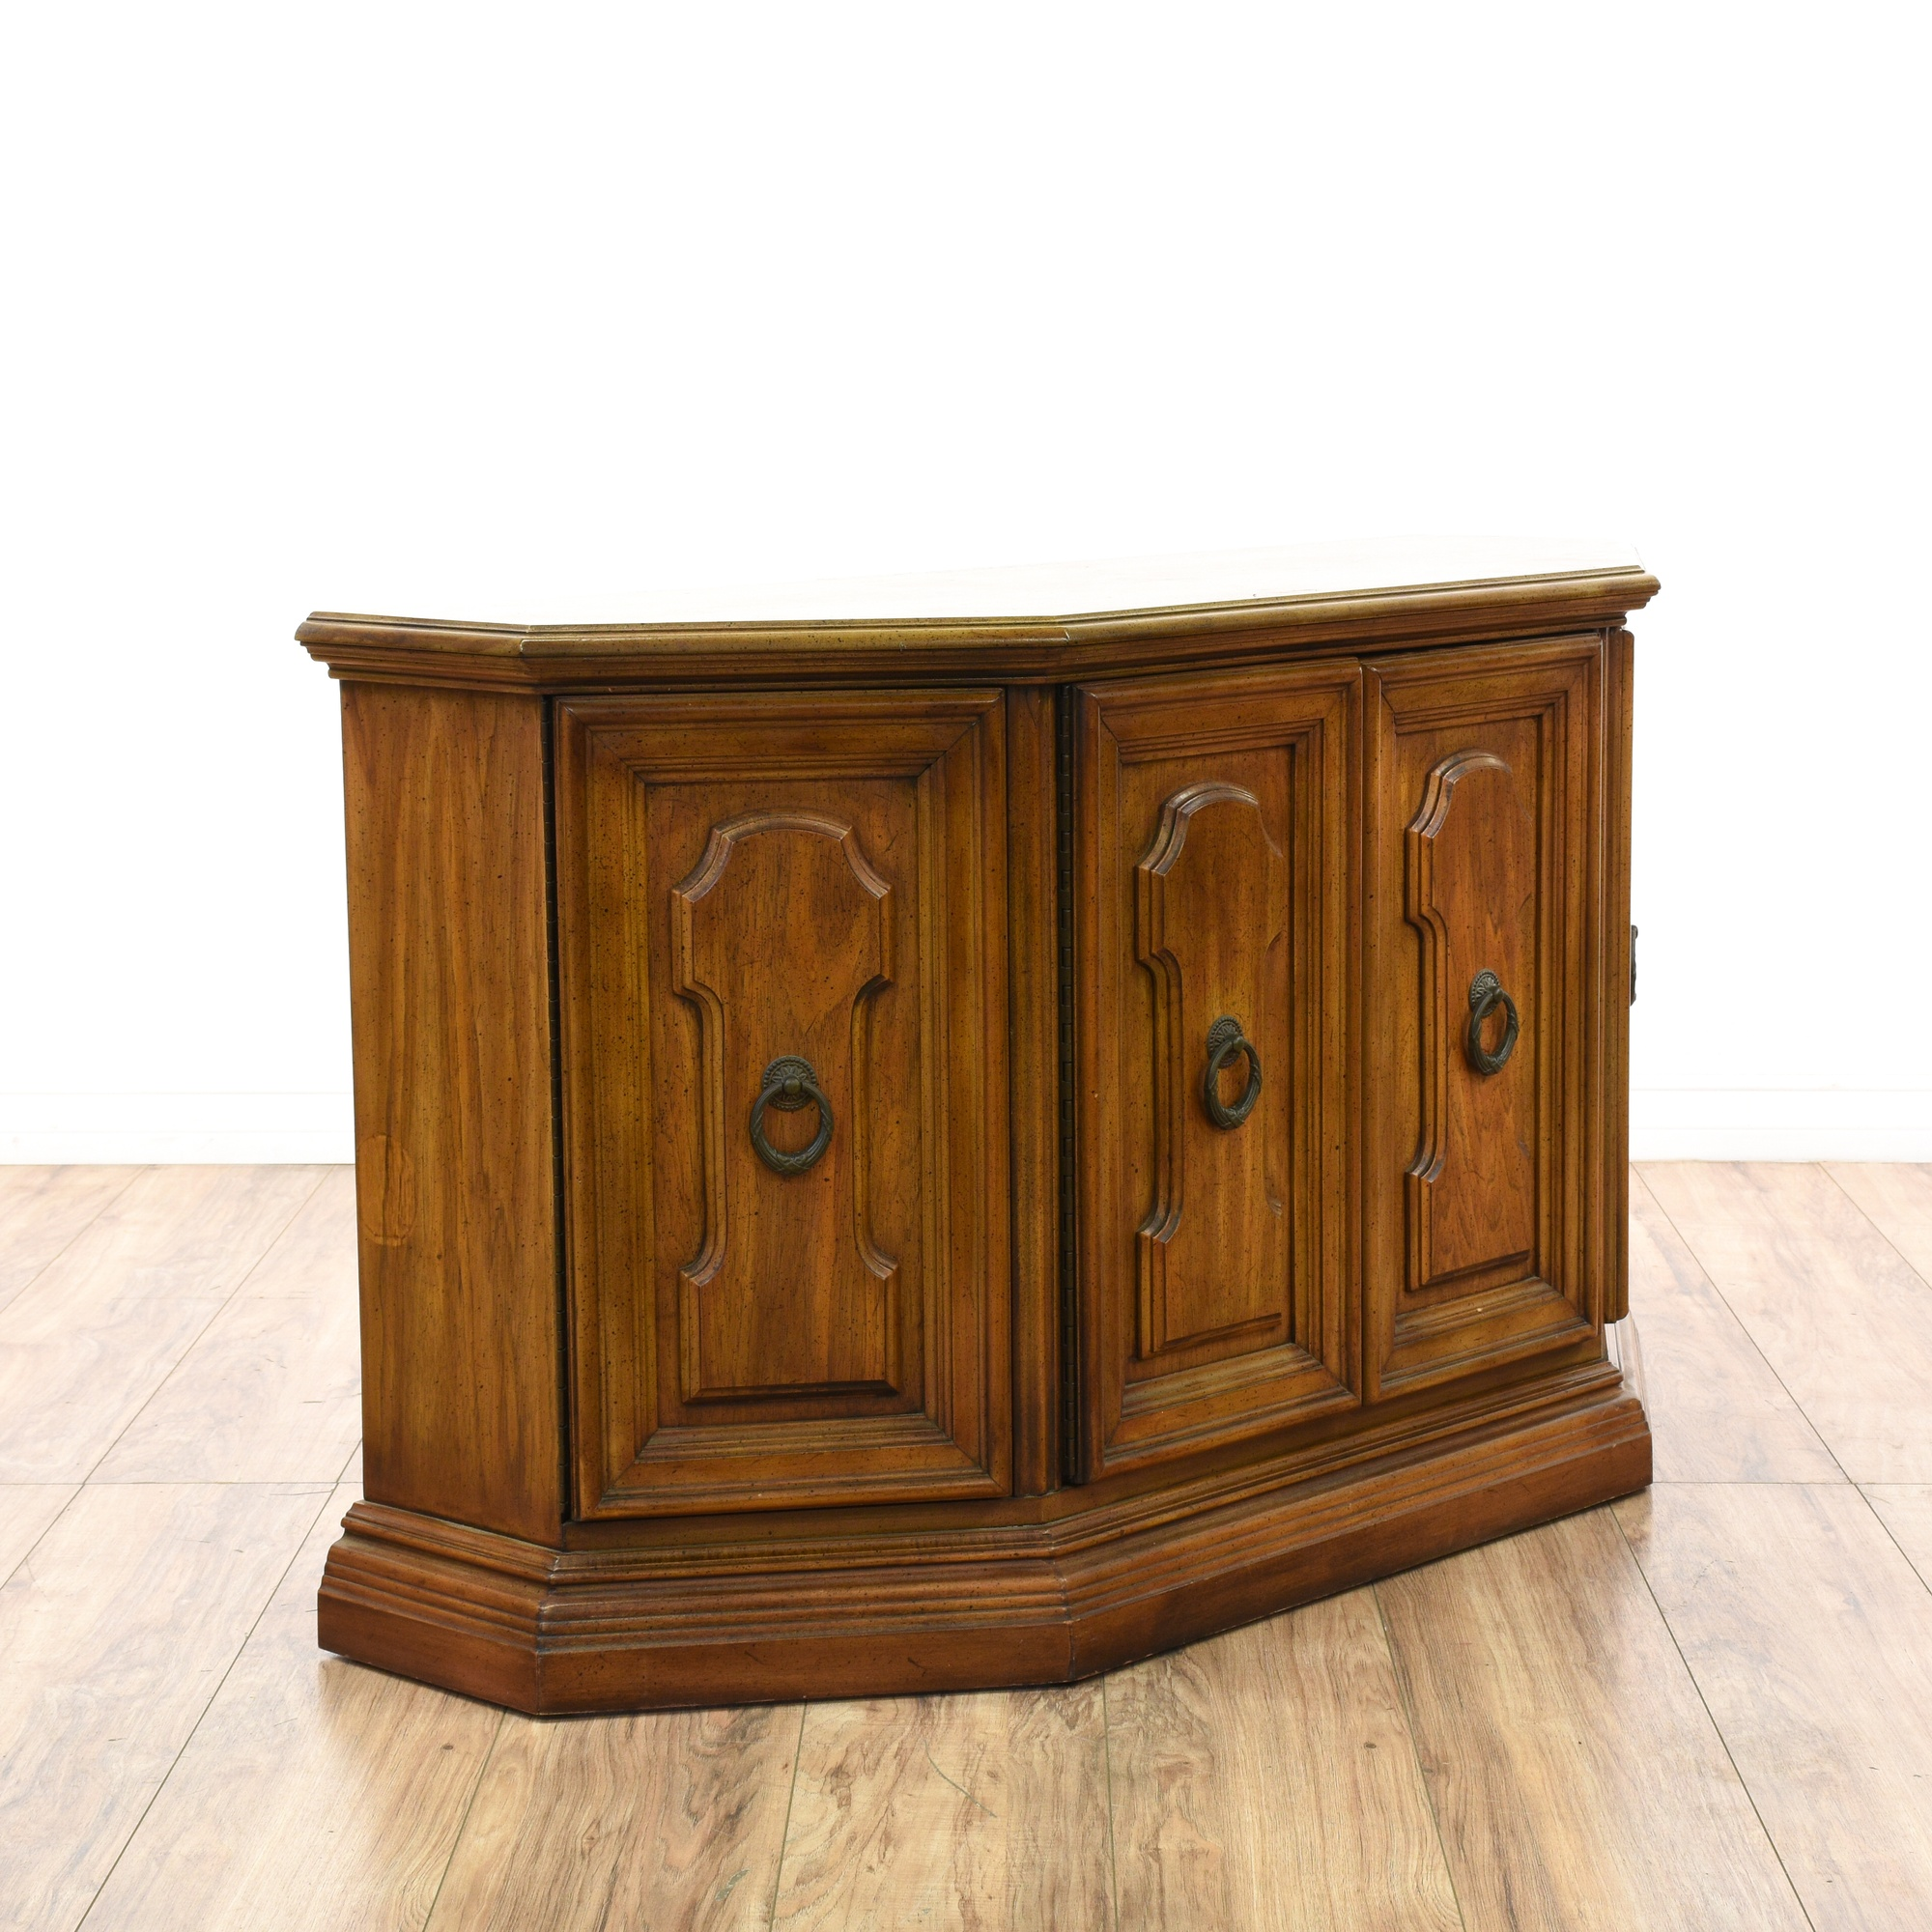 Foyer Console Cabinet : Carved wood panel entryway console cabinet loveseat